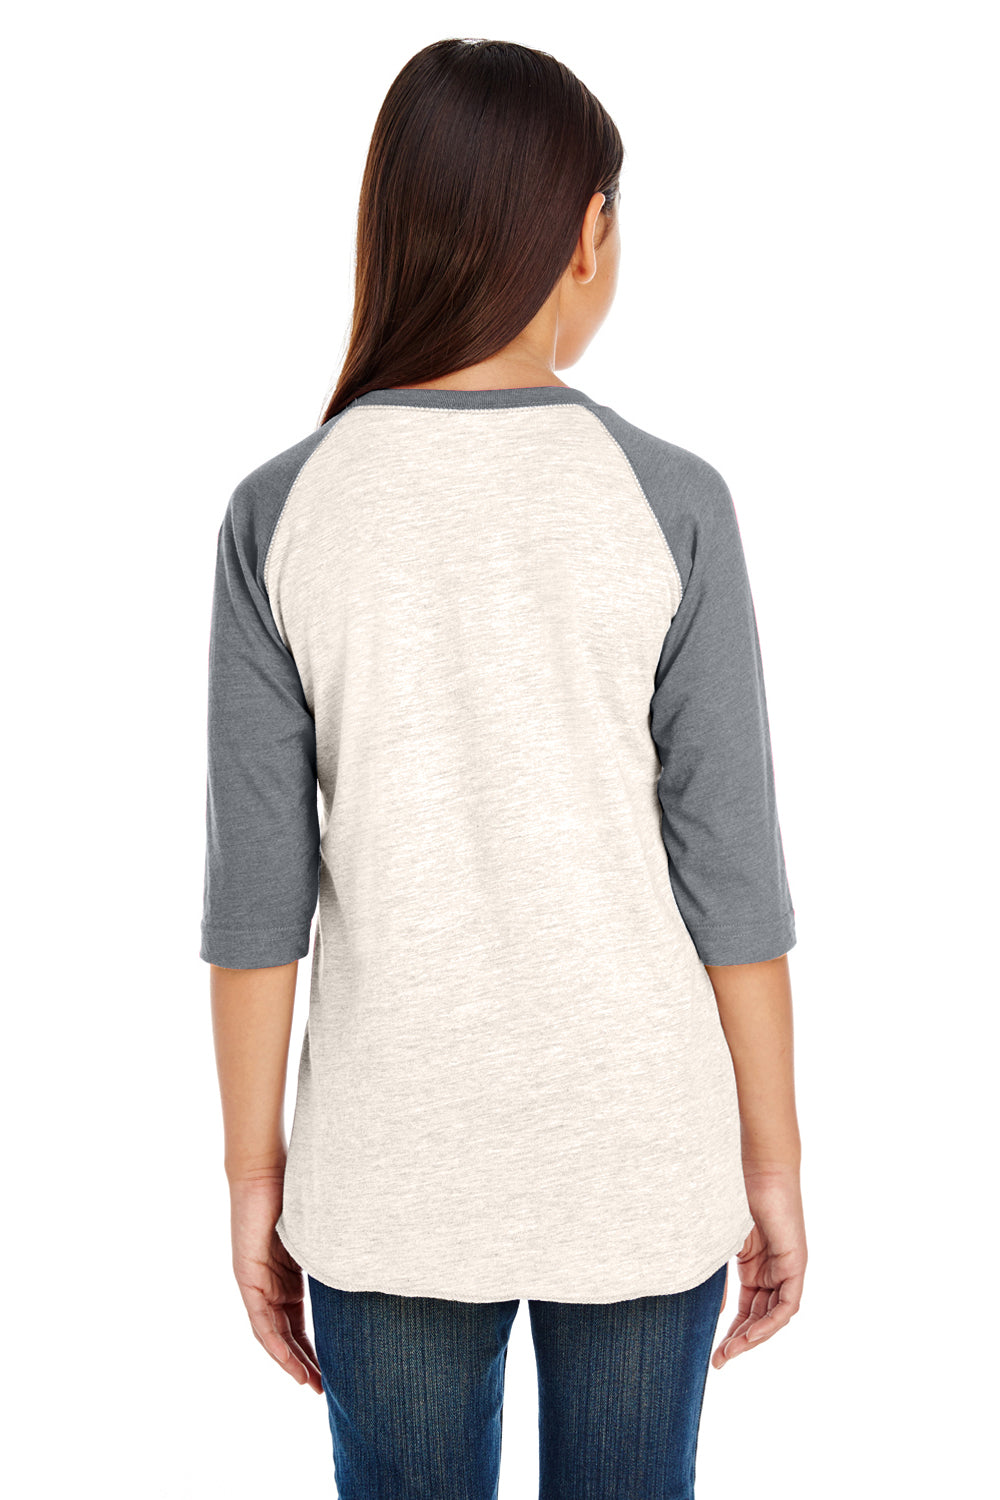 LAT 6130 Fine Jersey 3/4 Sleeve Crewneck T-Shirt Heather Natural/Granite Grey Back